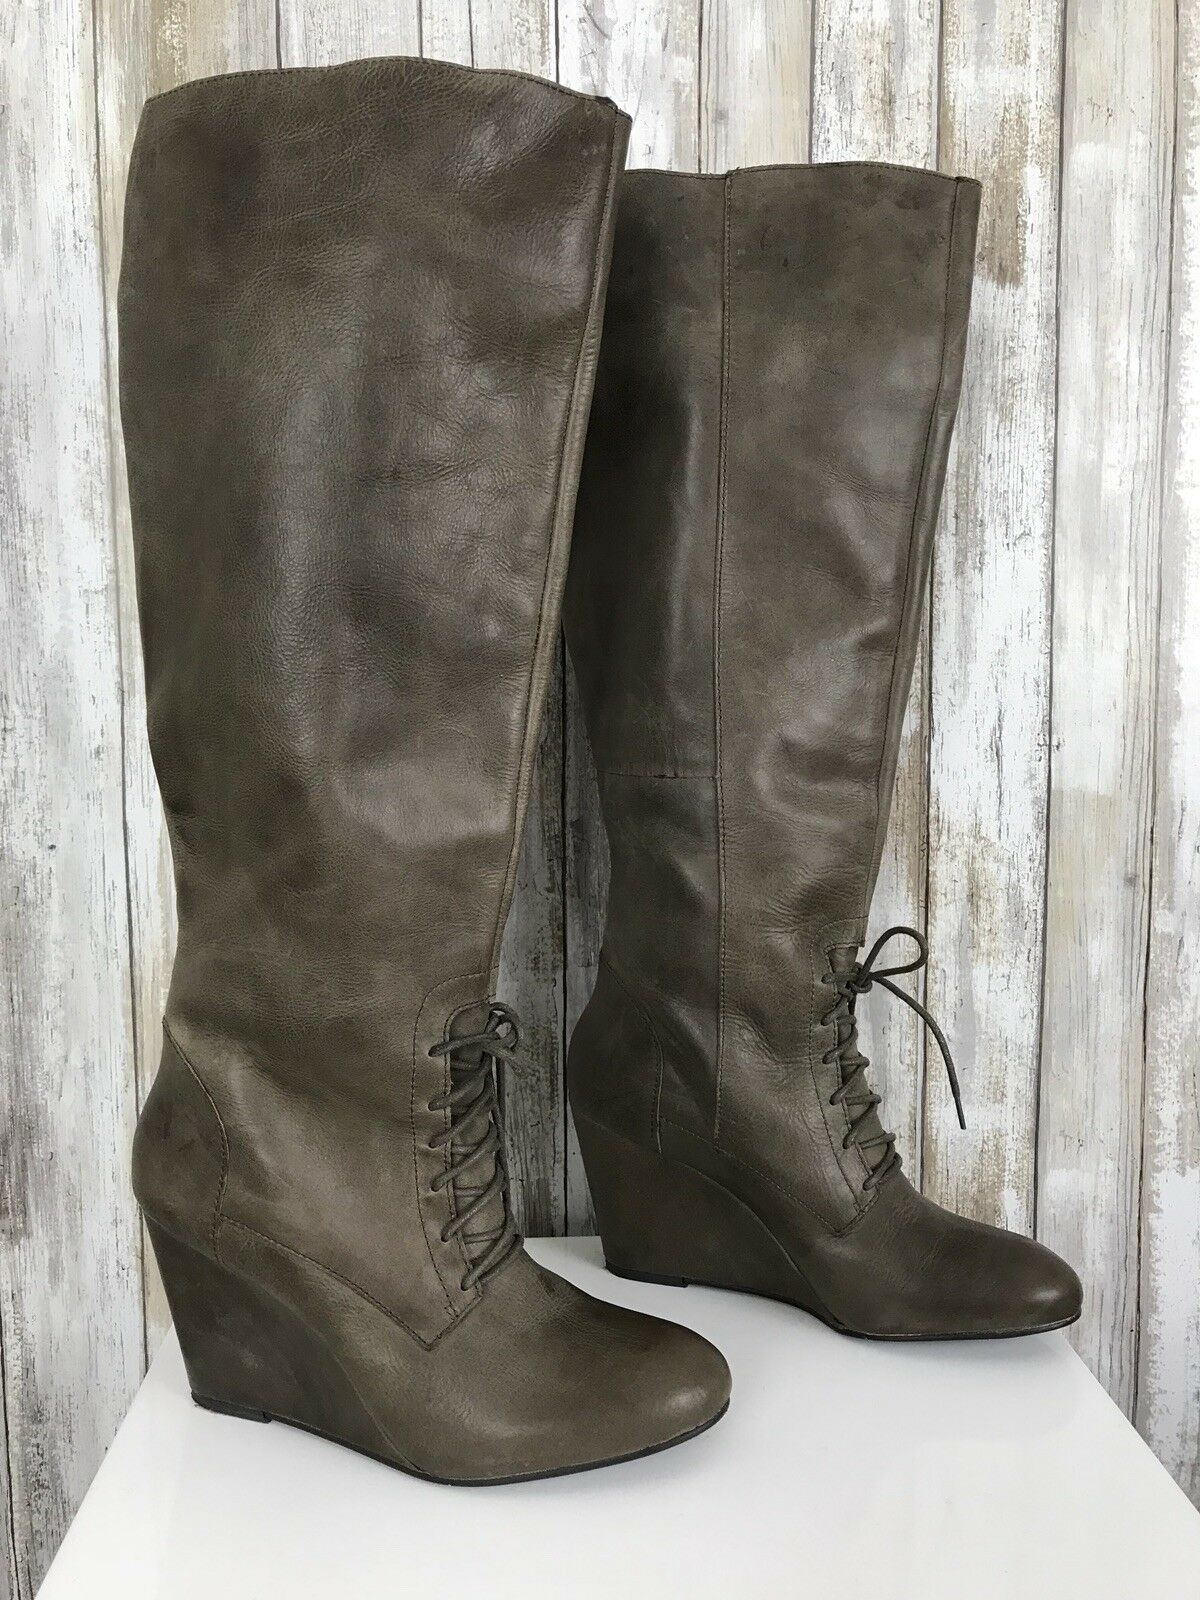 Steve Madden LUXE Taupe Light Brown Tall Leather Lacer Up Pull On Wedge Boots 9